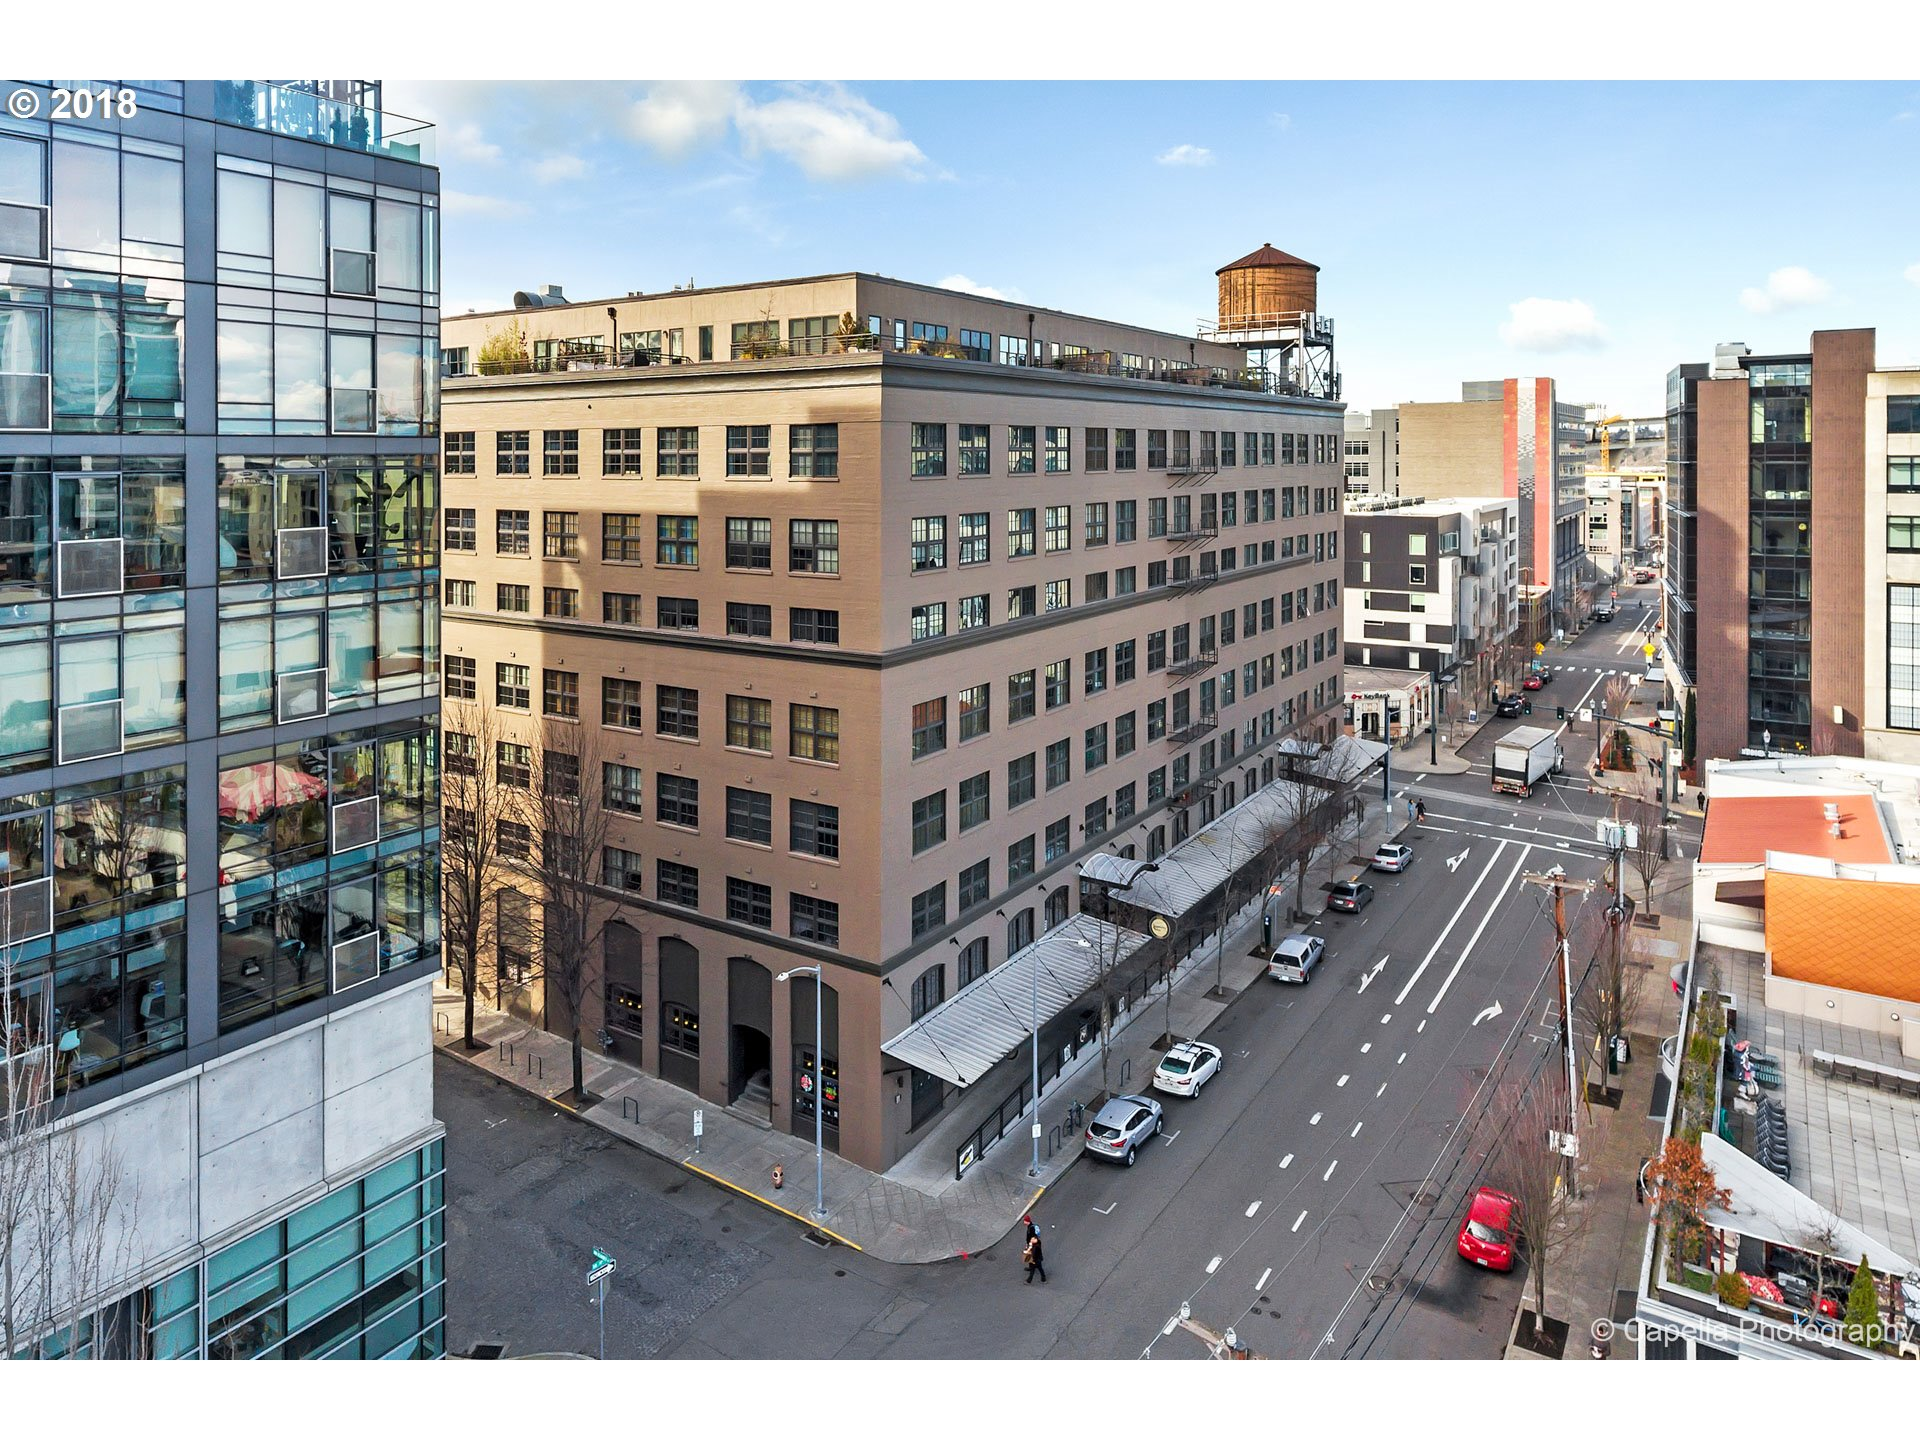 Location and urban lifestyle in the Marshall Wells in the Pearl on Streetcar Line.Enjoy the loft style yet definition of space created by this floor plan with access on 2 levels.CREATE SECOND BEDROOM WITH AMPLE FLEX SPACE.TWO PARKING.Open floor plan with large windows,old growth timber,sweeping staircase,exposed beams and view of Fremont Bridge.Great value and flexibility in square footage.